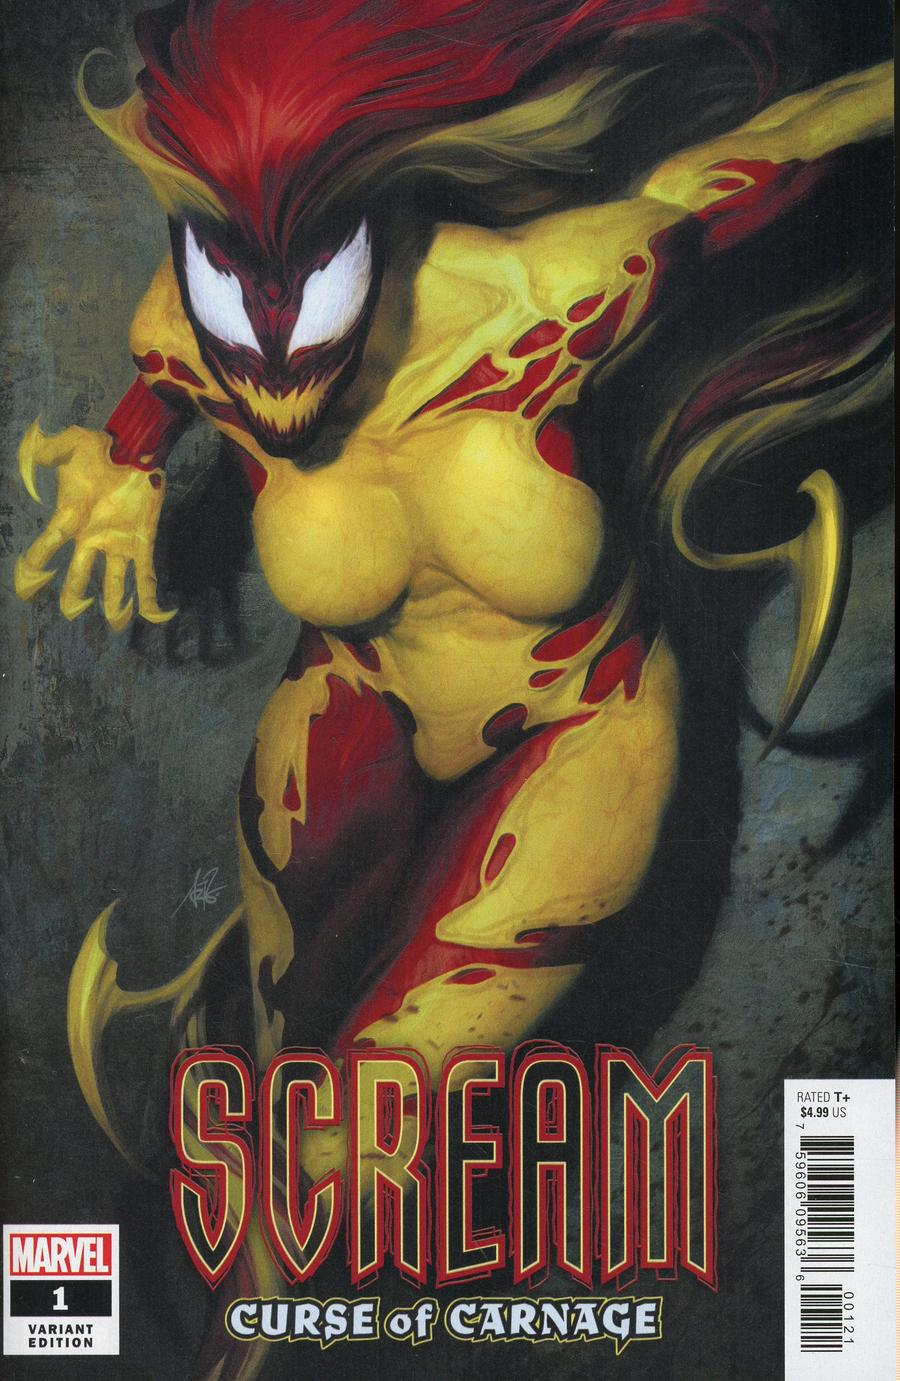 Scream Curse Of Carnage #1 Cover B Variant Stanley Artgerm Lau Cover (Absolute Carnage Tie-In)